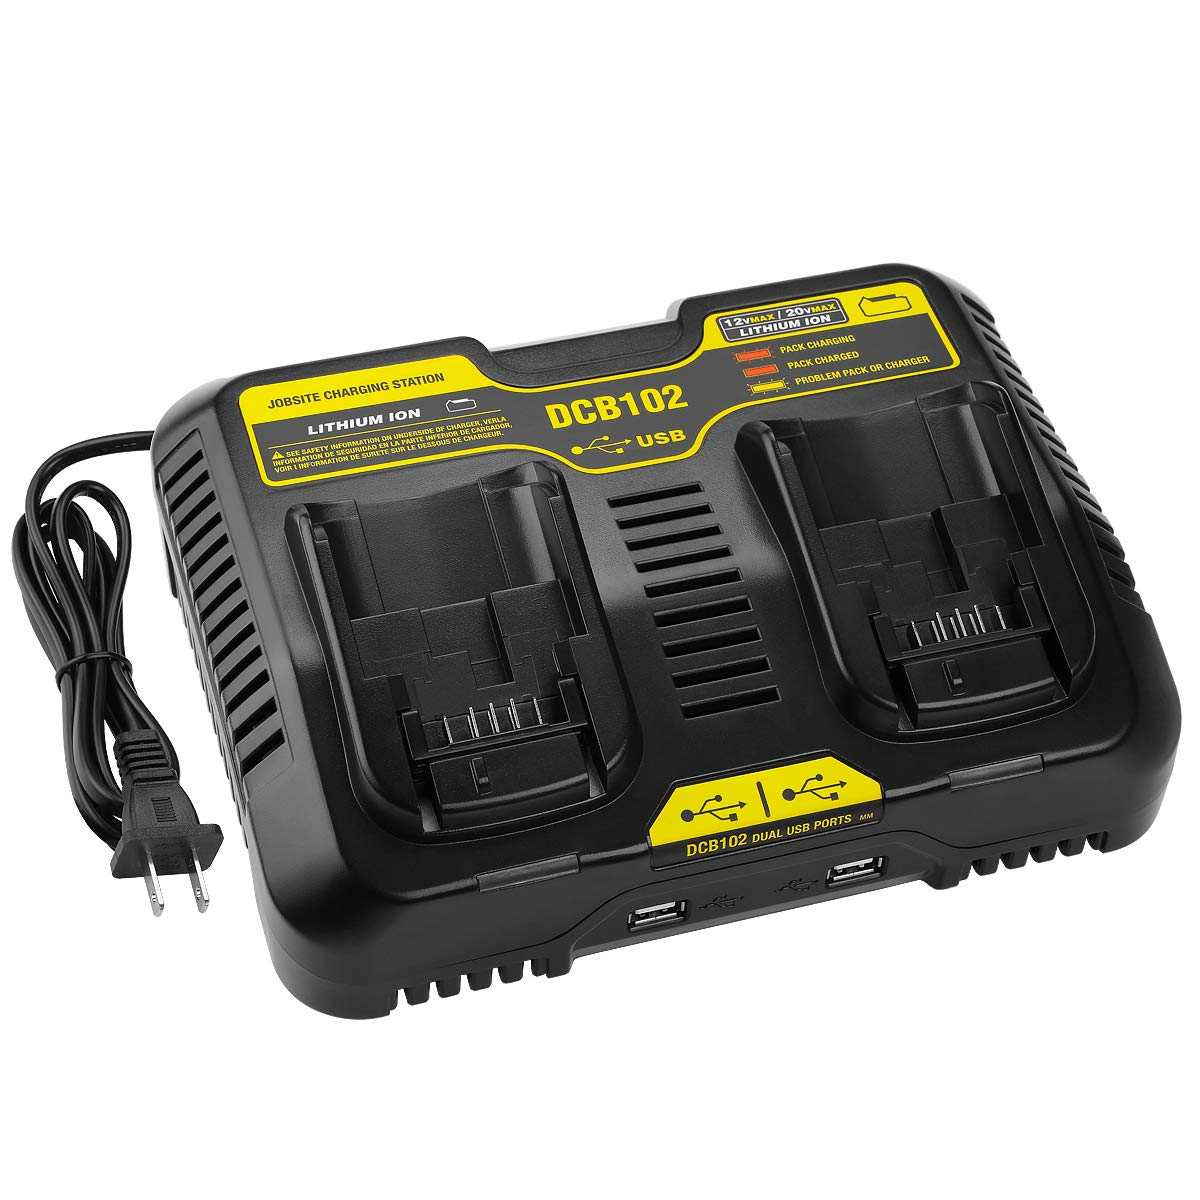 Energup Replacement DCB102BP Charger for DEWALT 20-volt MAX Jobsite Charging Station DCB102 DCB102BP Dewalt 20v Lithium Battery DCB205-2 DCB204-2 Dewalt 20v charger by Energup